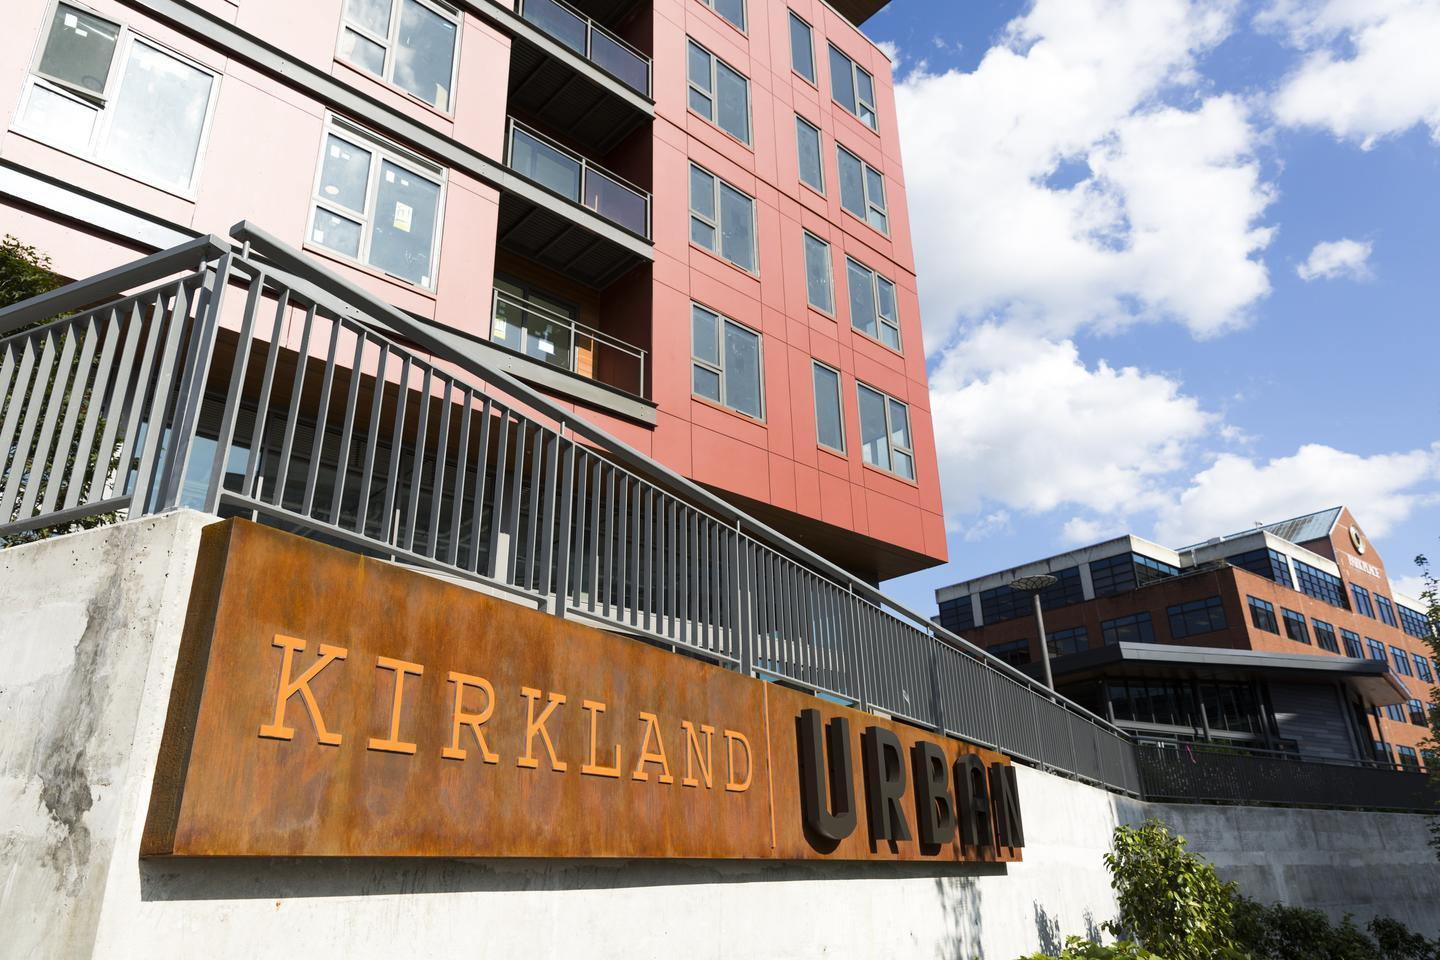 News post image: It's finally known how much Google paid for Kirkland Urban